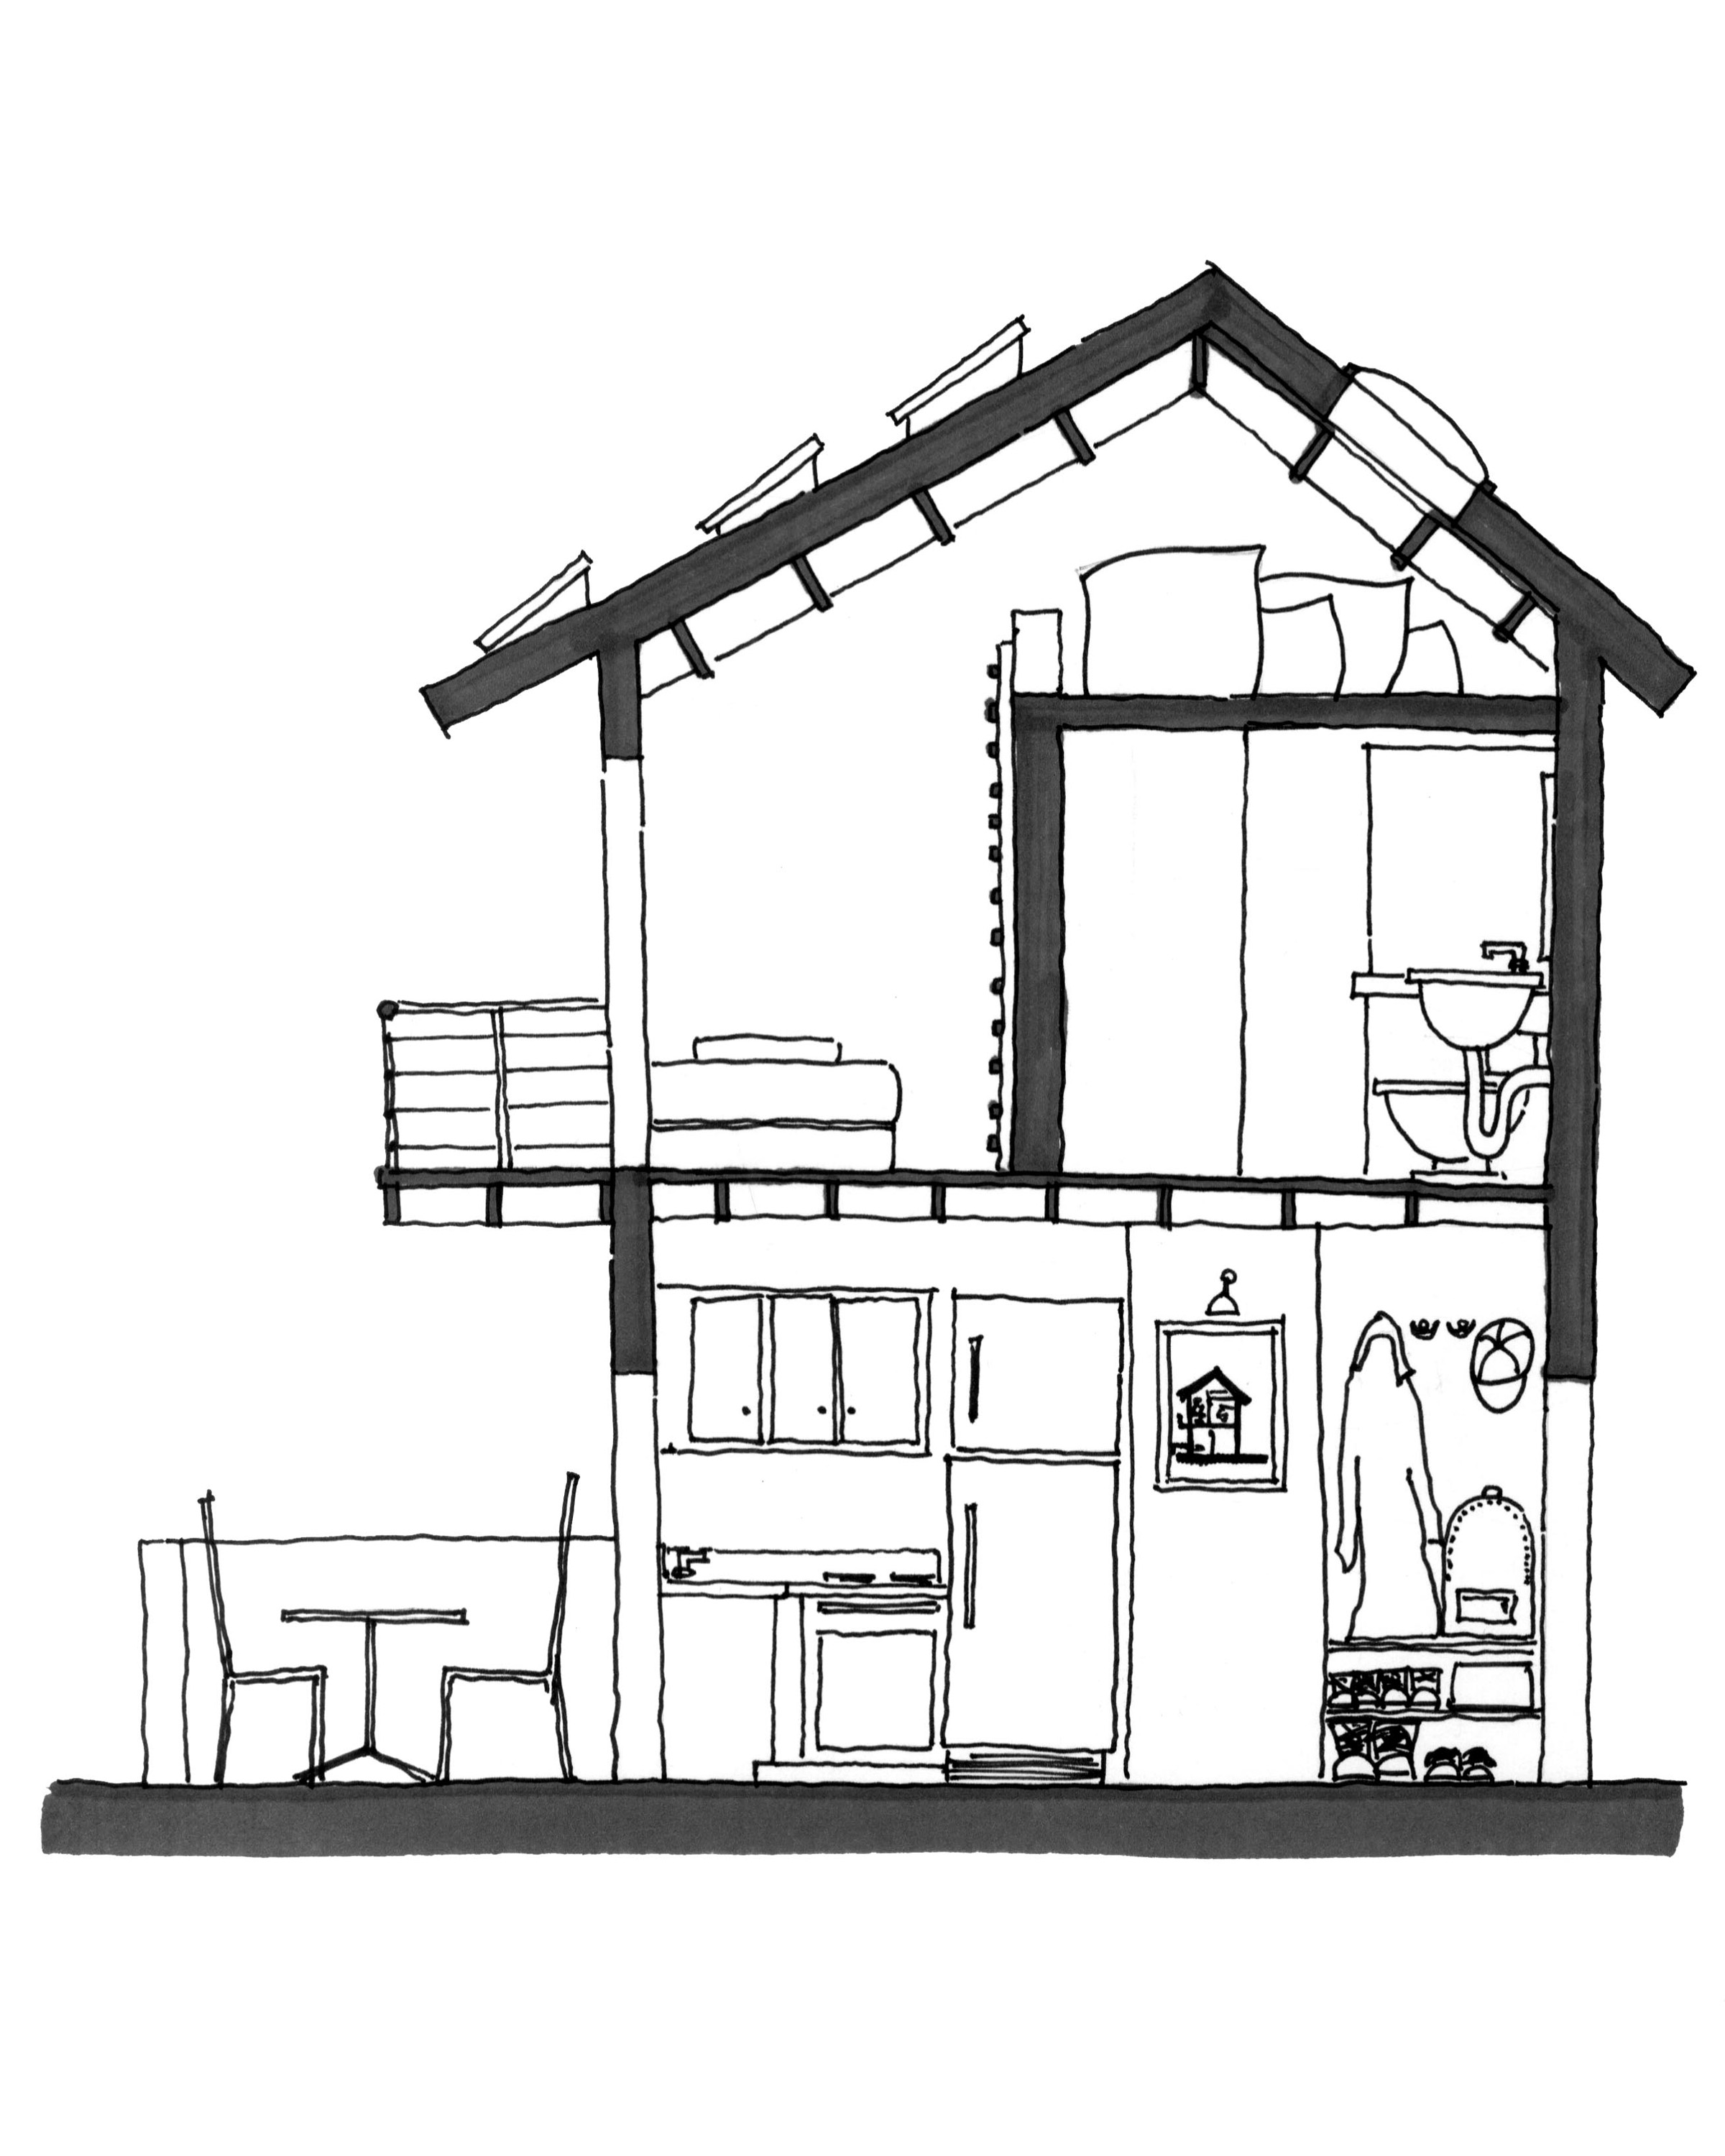 Design for Micro-Living Development